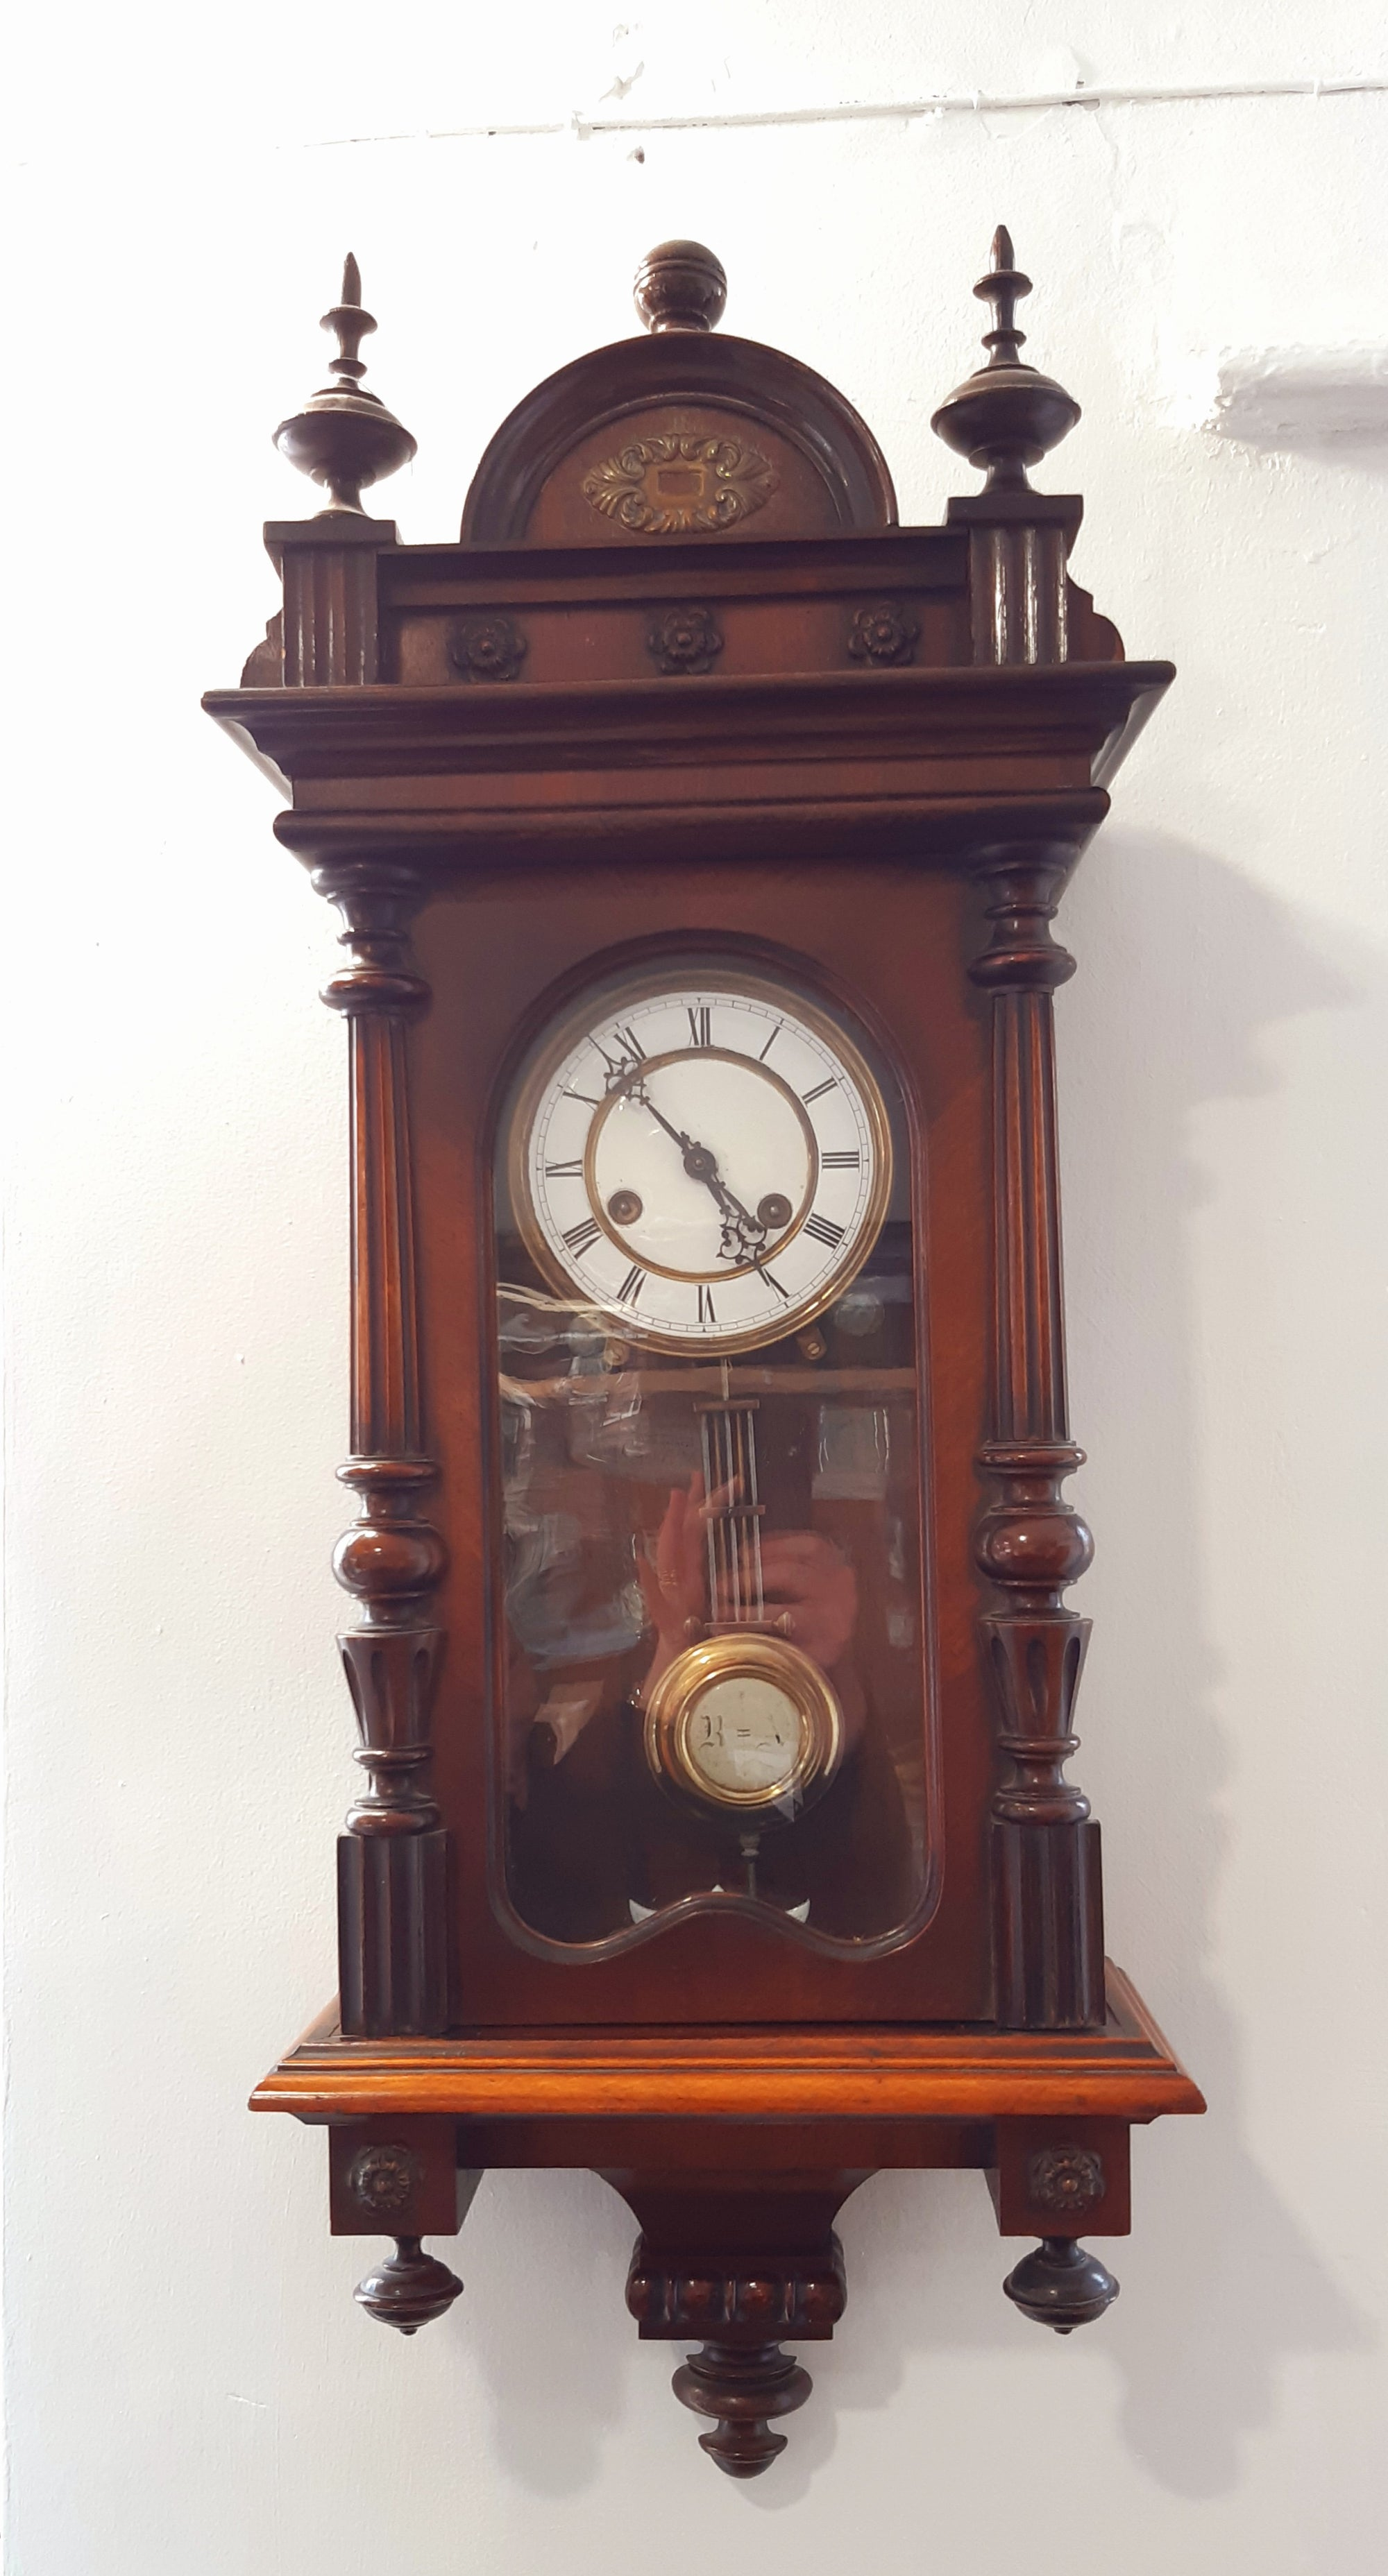 Bavarian 8 Day Strike Wall Clock - SH Antique | Antique Clock | Clock Corner